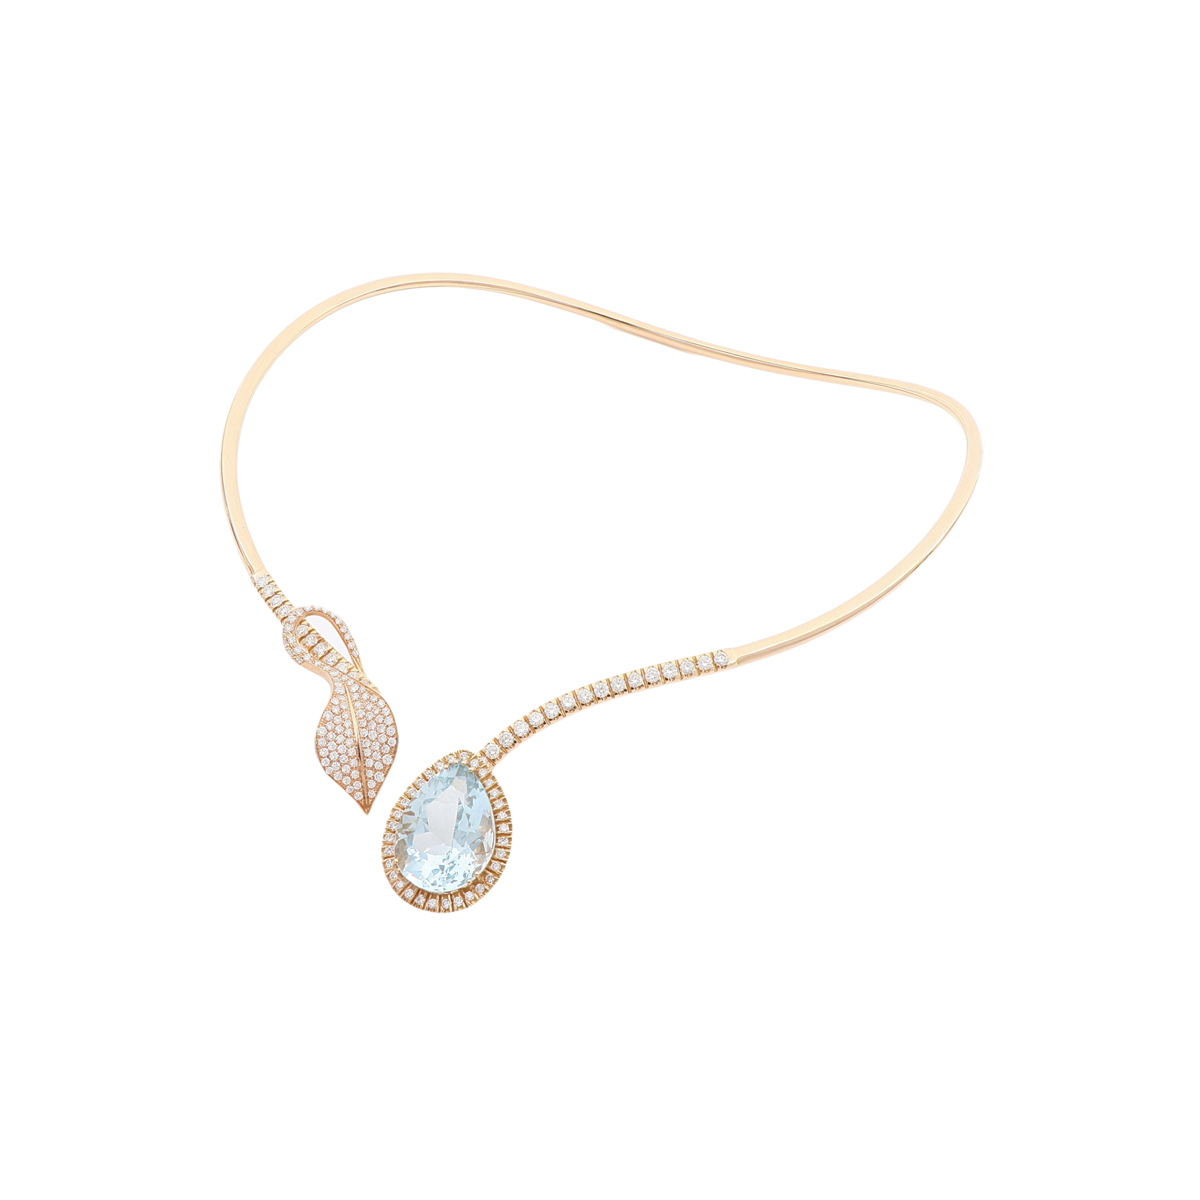 Open Collar Necklace with Pear-Cut Aquamarine and Diamond Leaf